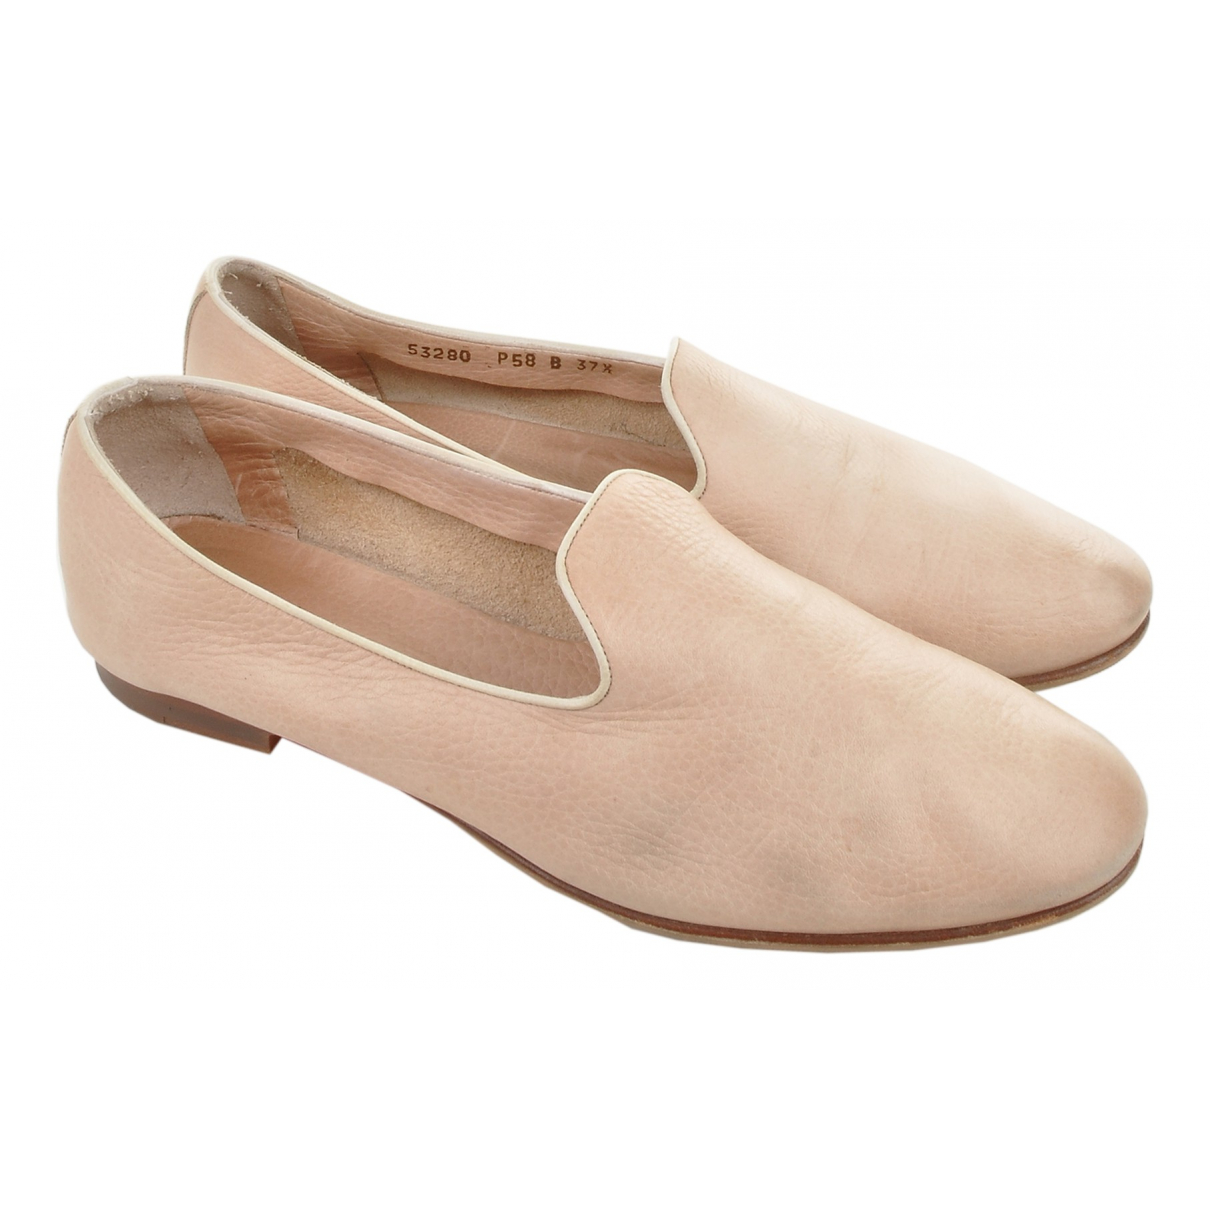 Santoni N Pink Suede Flats for Women 37.5 IT